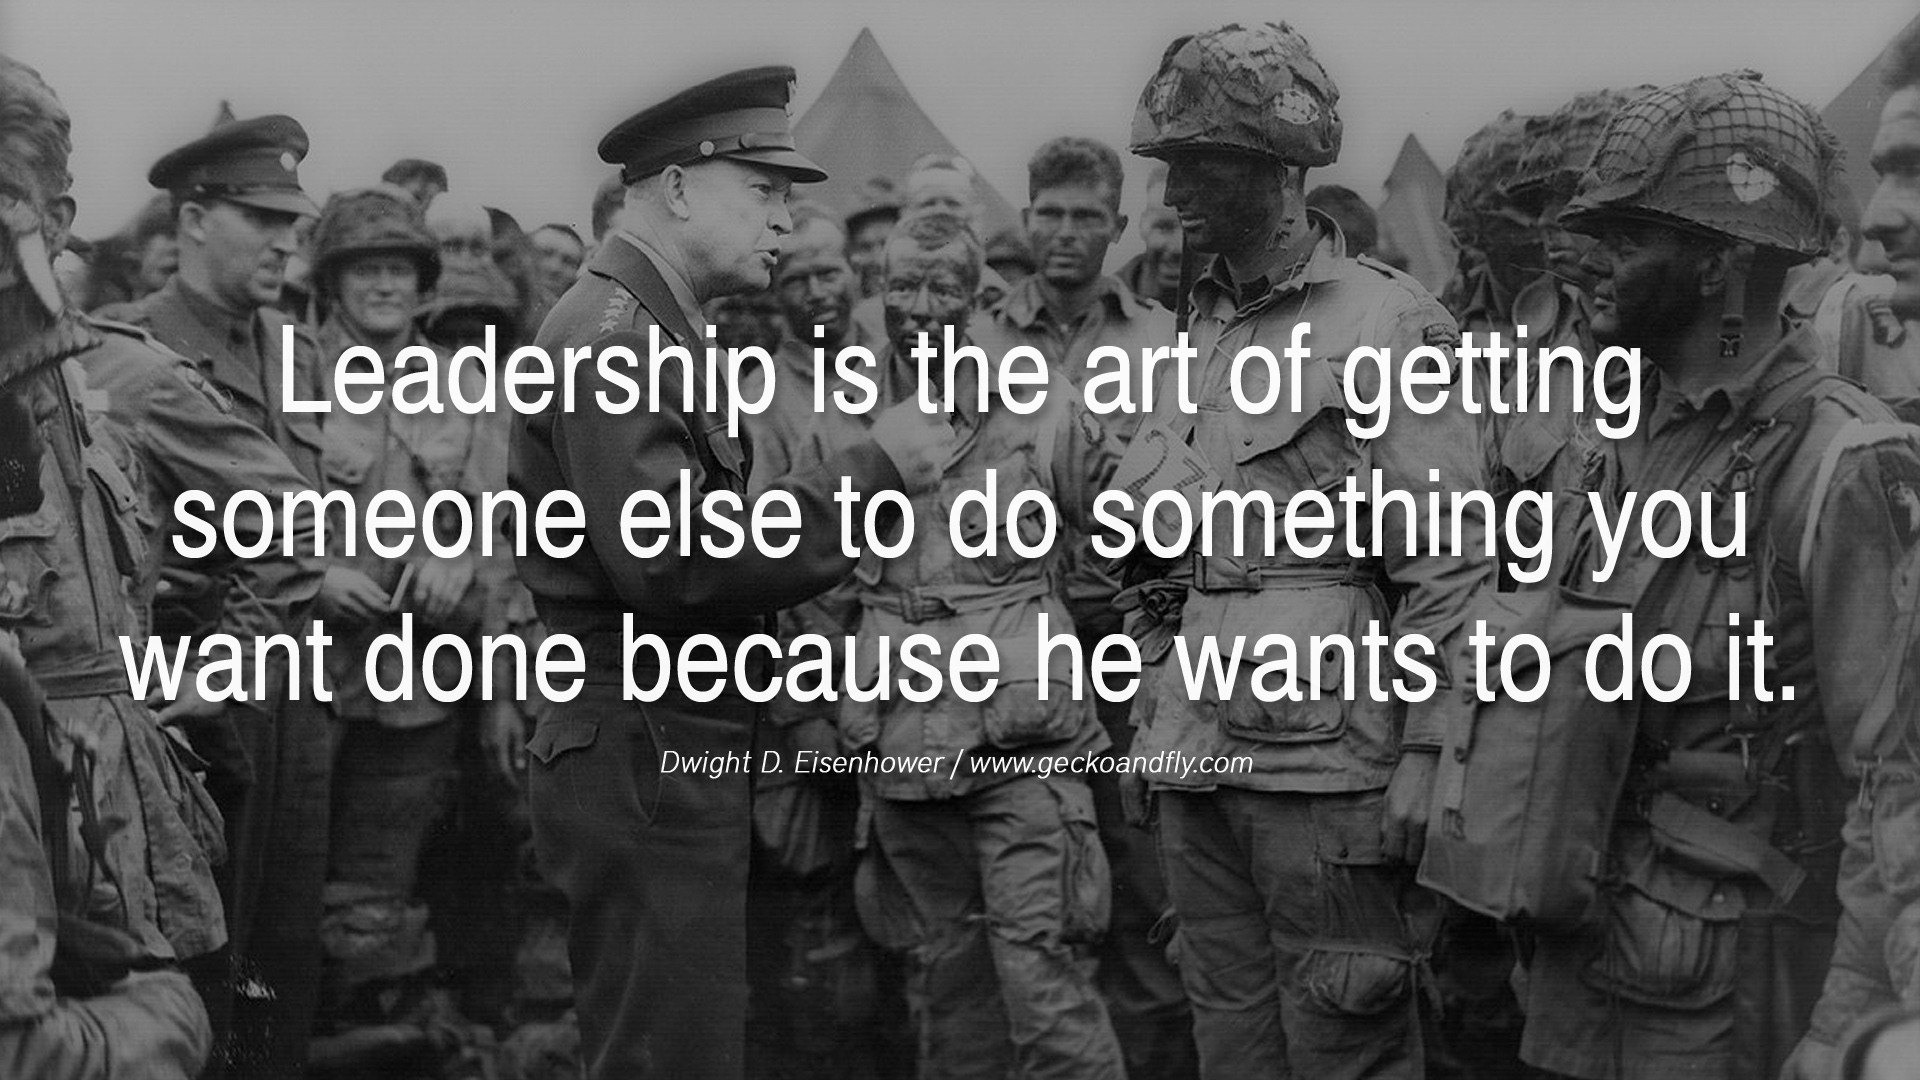 Army Leadership Quotes  Quotes about Army leadership 23 quotes